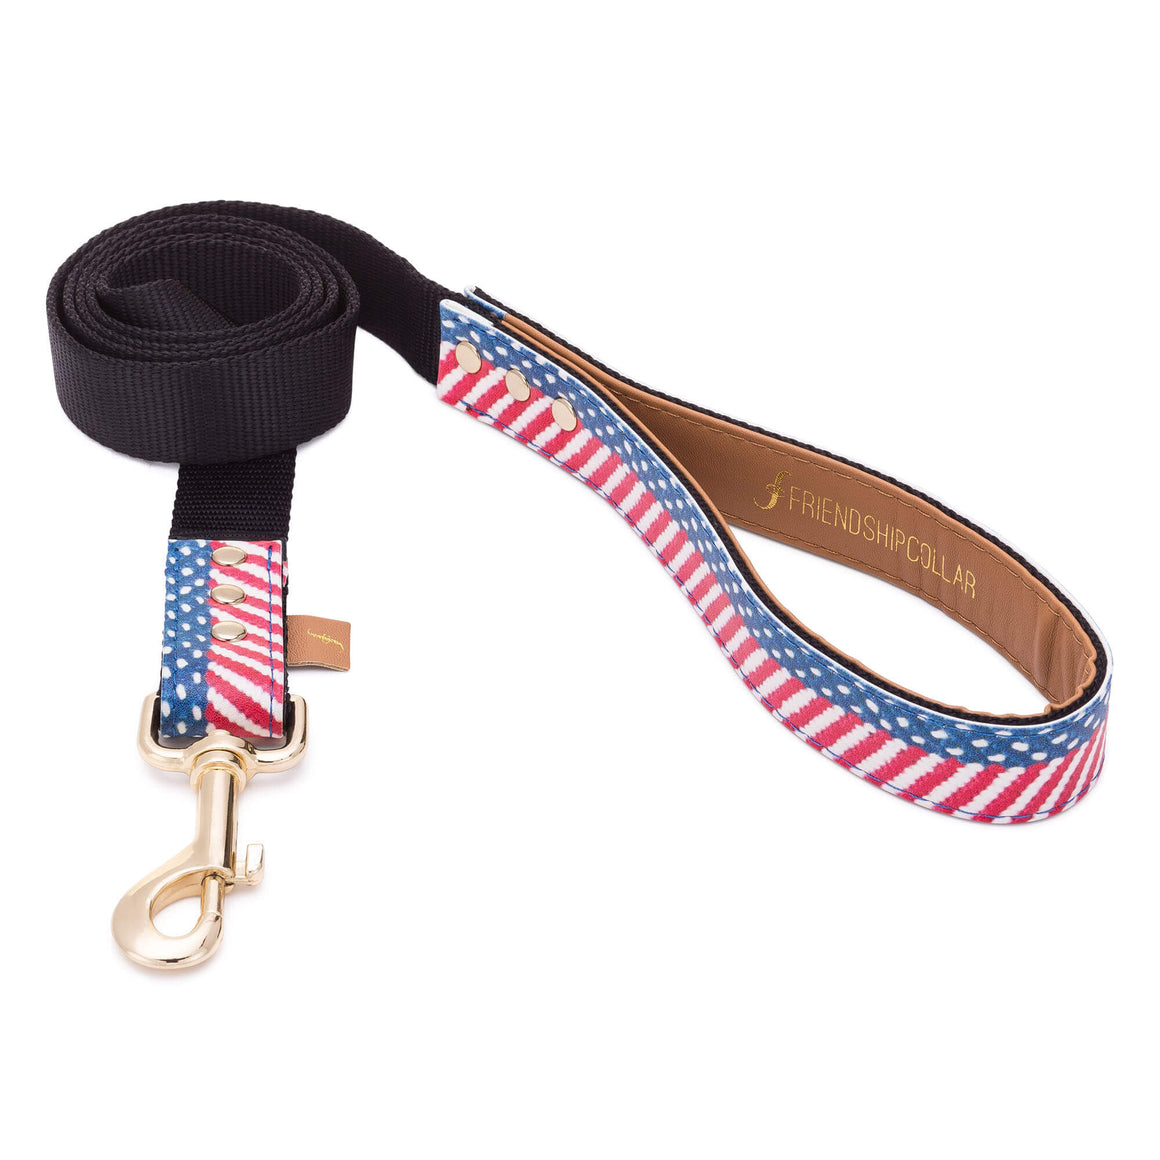 Red, White & Blue Presidential Friendship Dog Leash